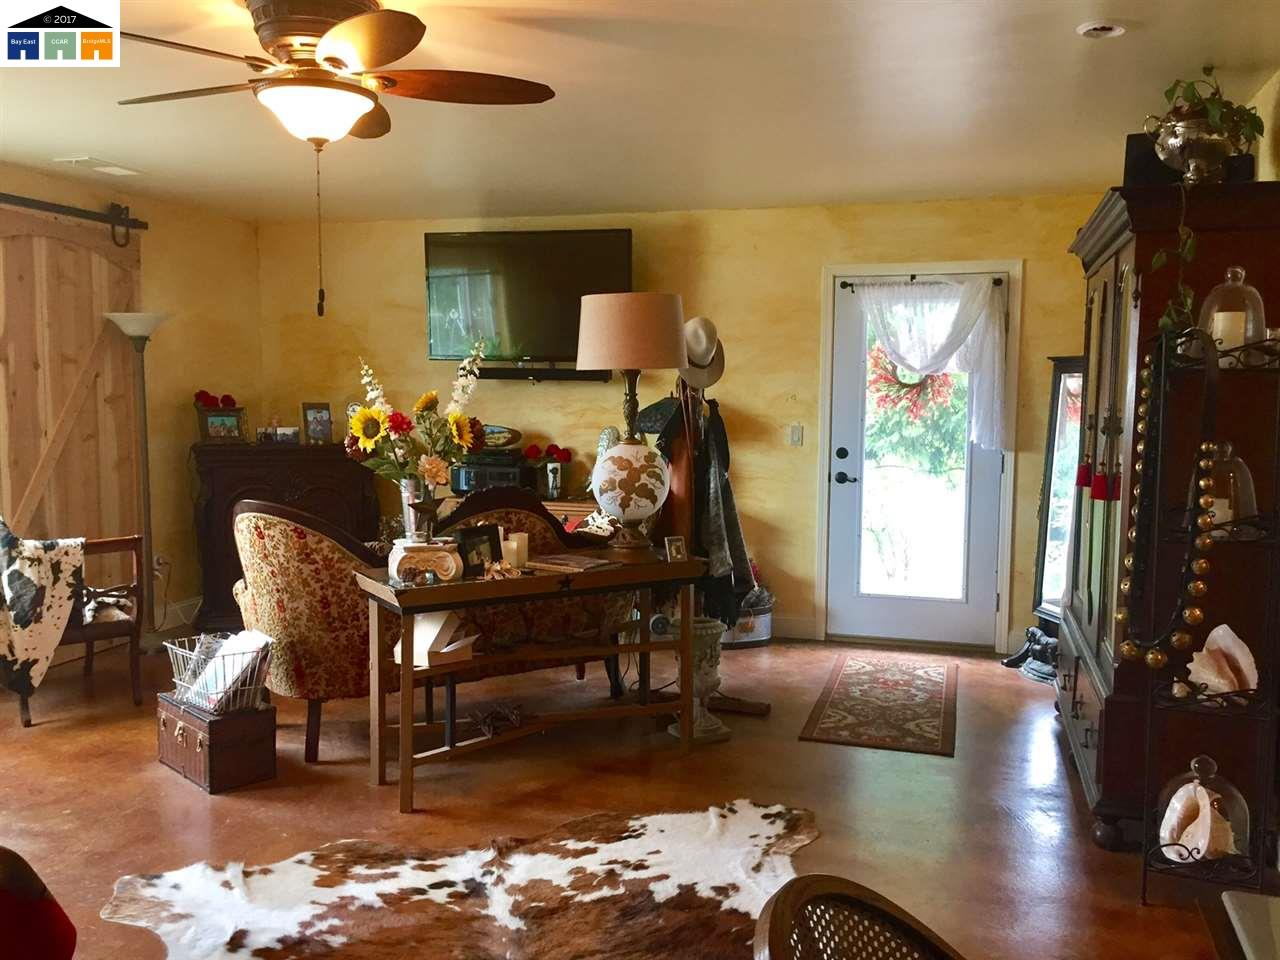 Additional photo for property listing at 4654 Stagecoach 4654 Stagecoach Copperopolis, カリフォルニア 95228 アメリカ合衆国